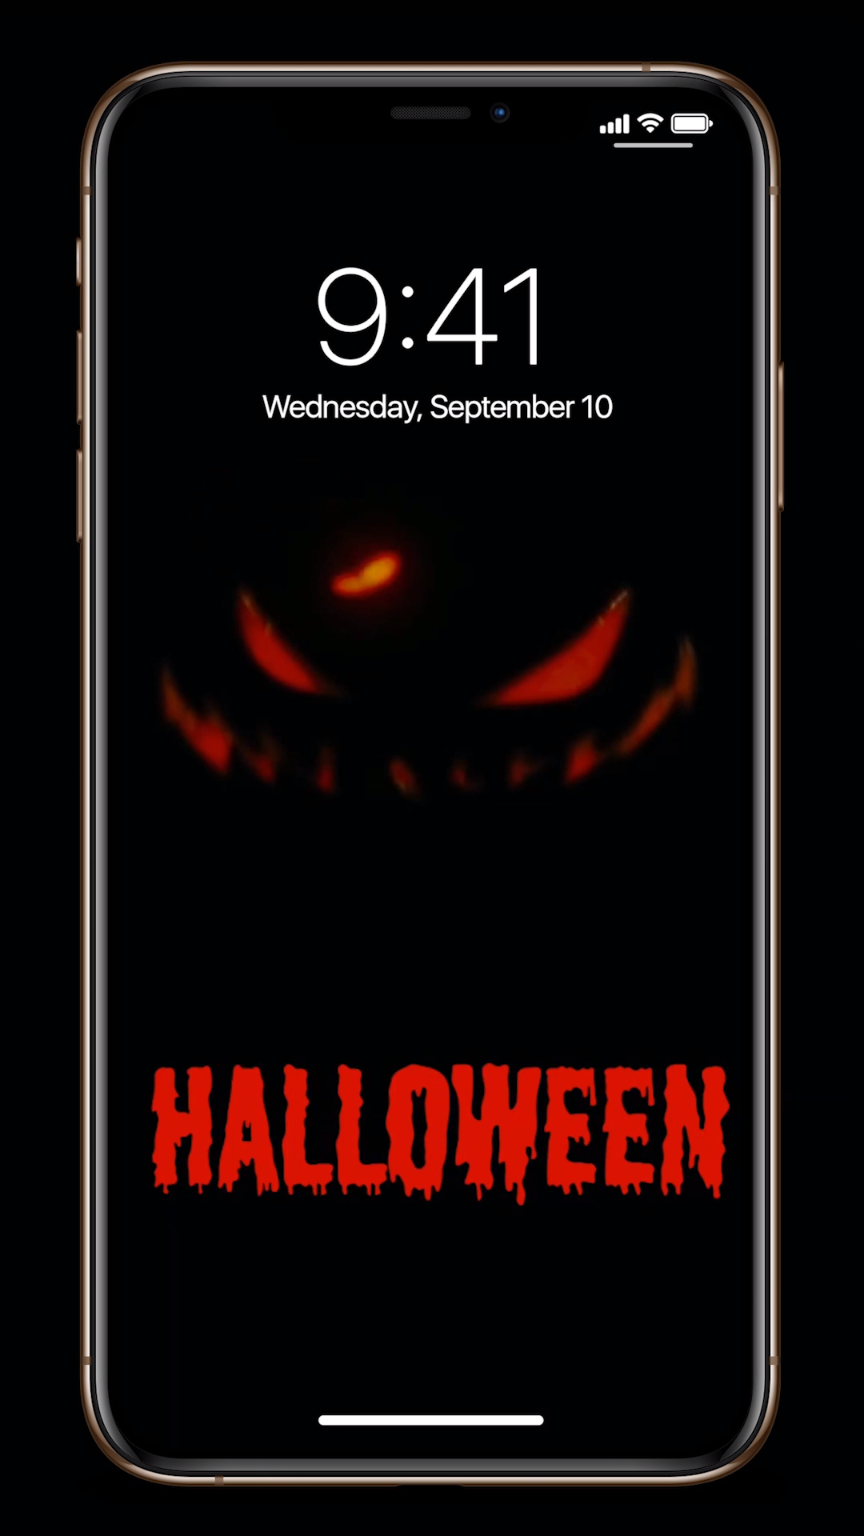 Halloween live wallpapers for iPhone!